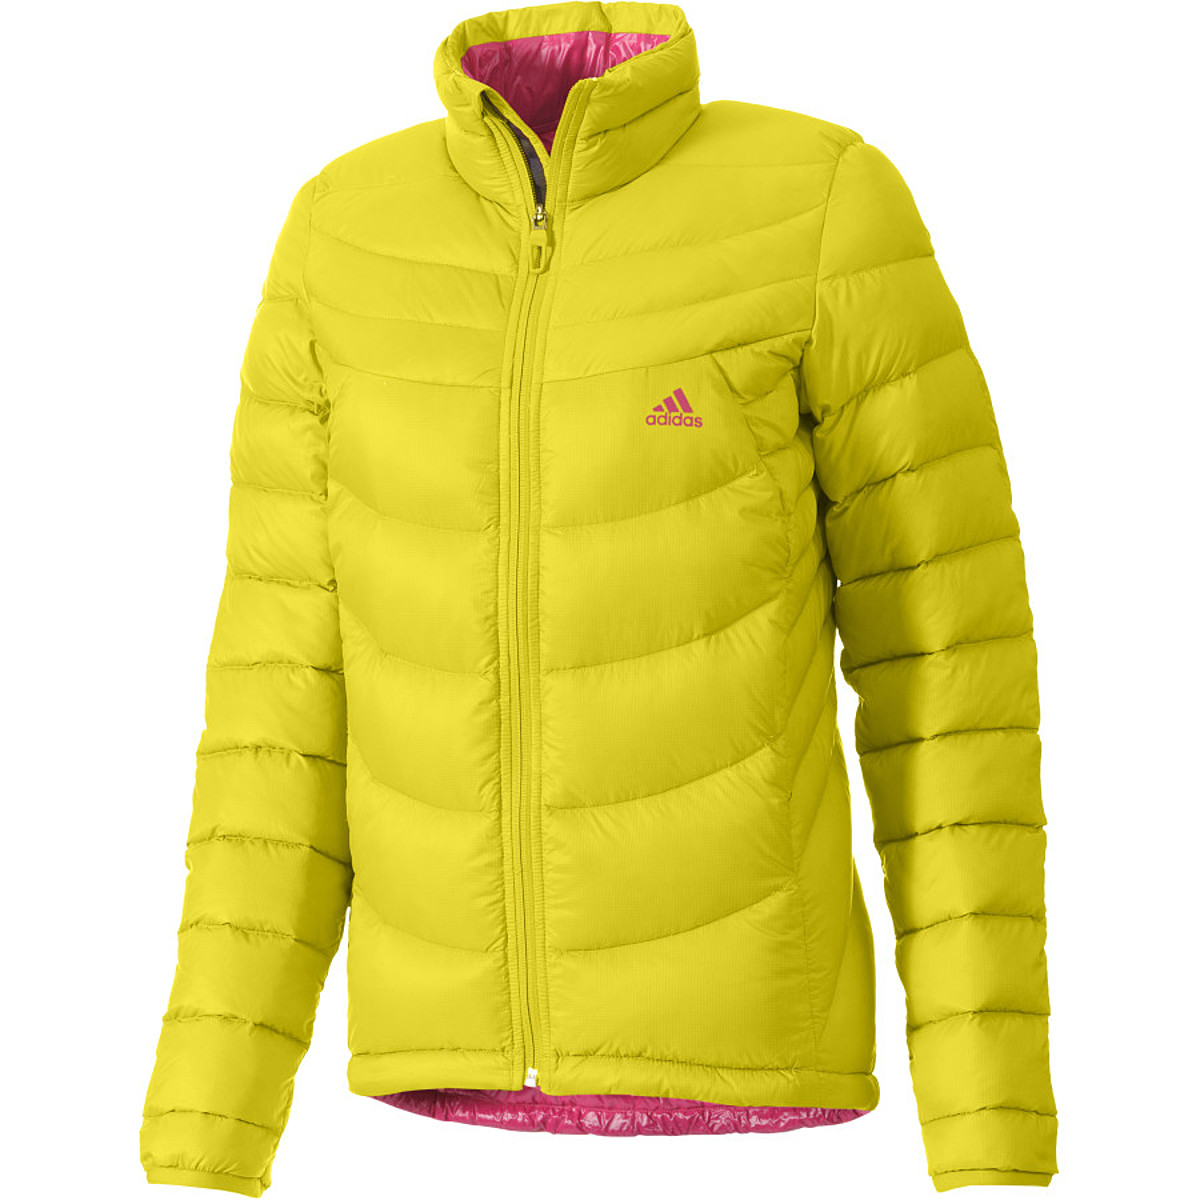 Adidas Hiking Light Down Jacket